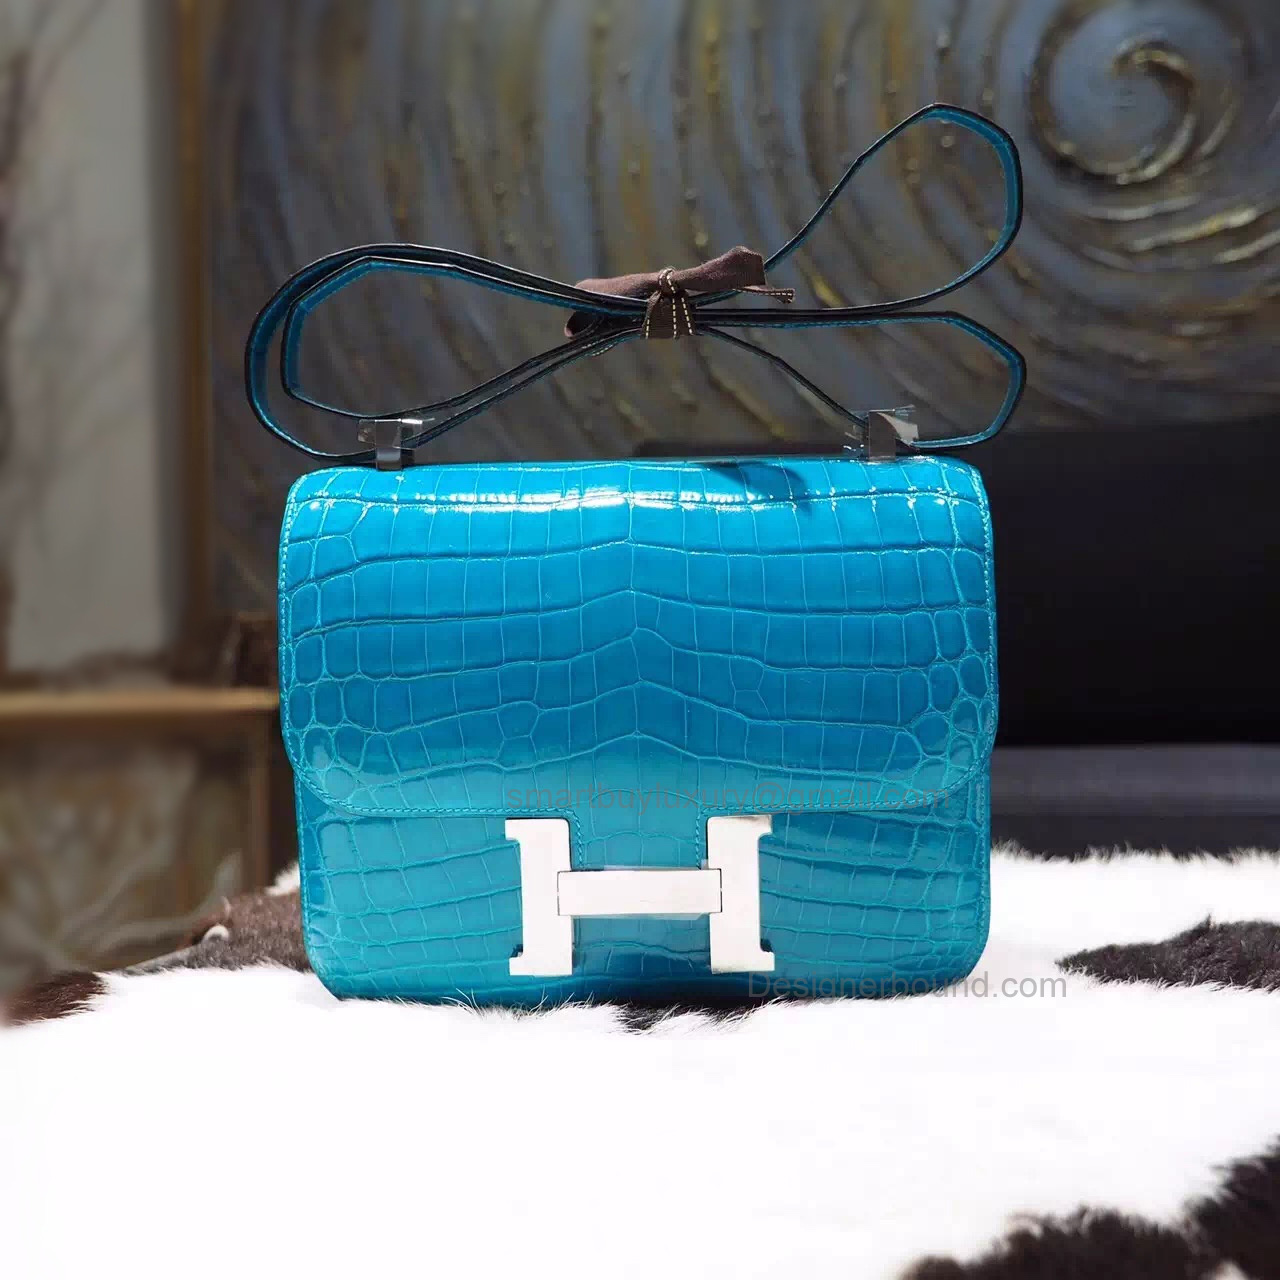 Replica Hermes Constance 23 Bag in 7w Blue Izmir Niloticus Shining Crocodile